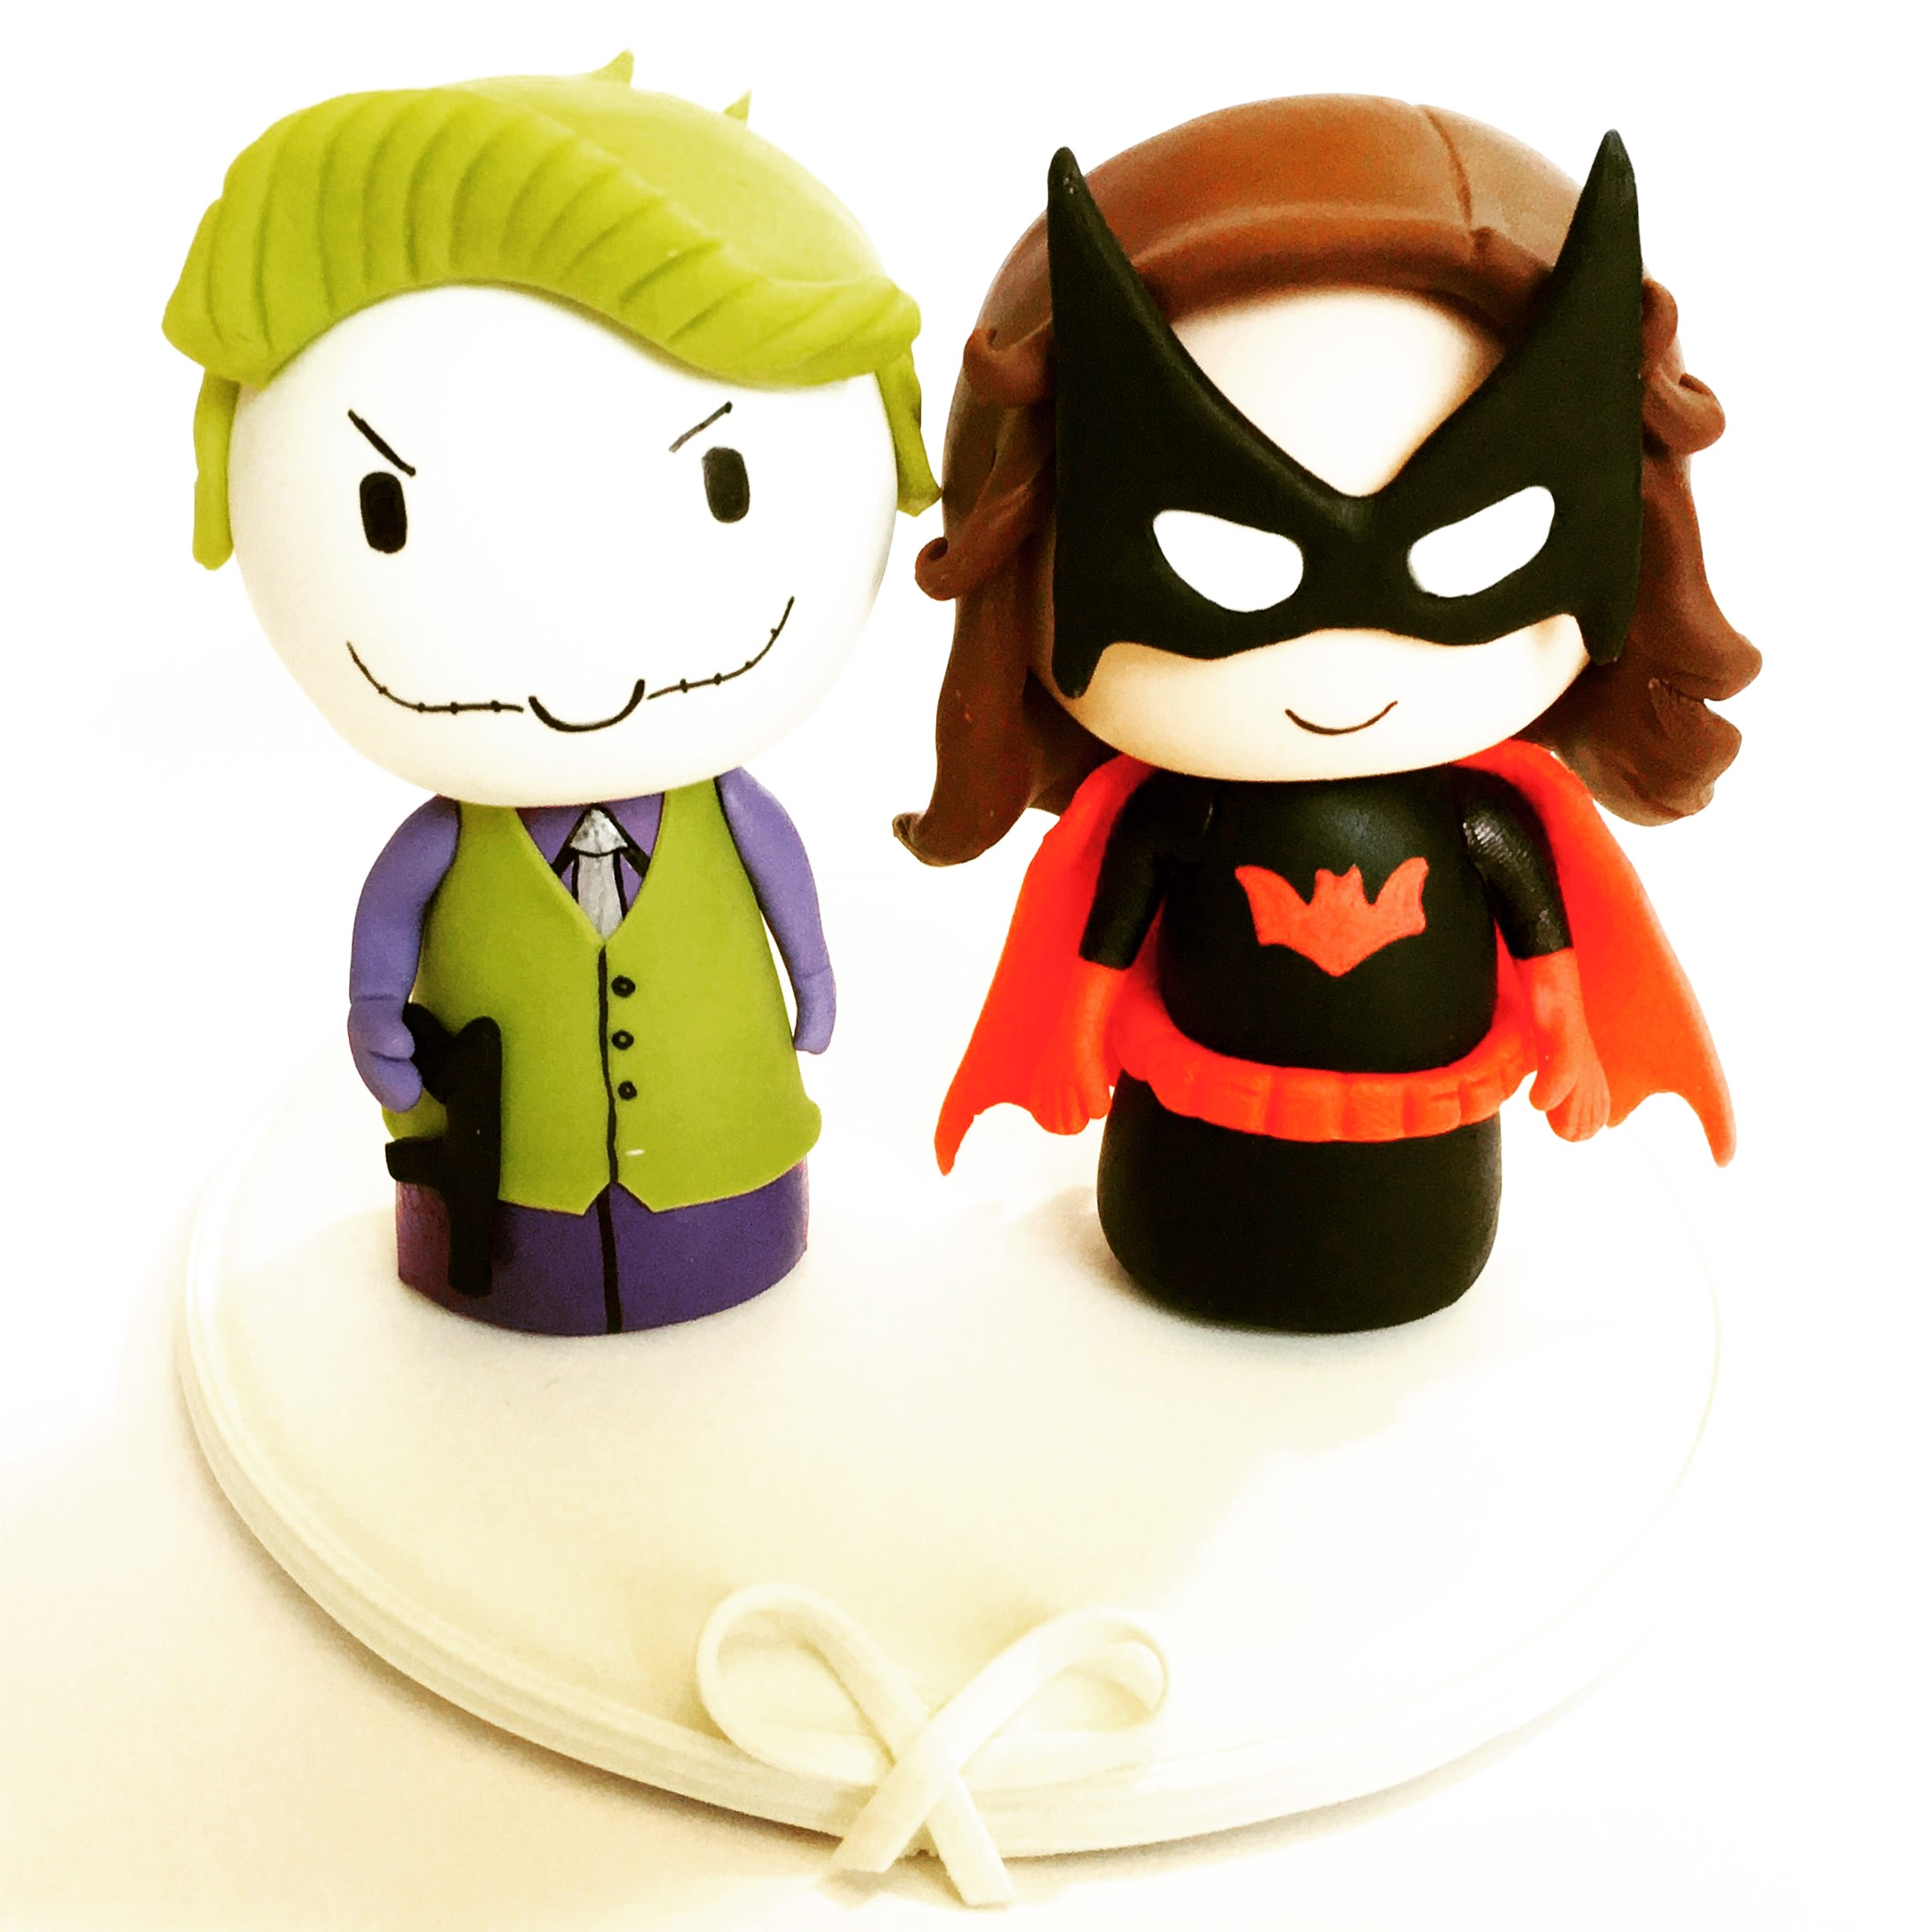 wedding-cake-topper-thejoker-batwoman